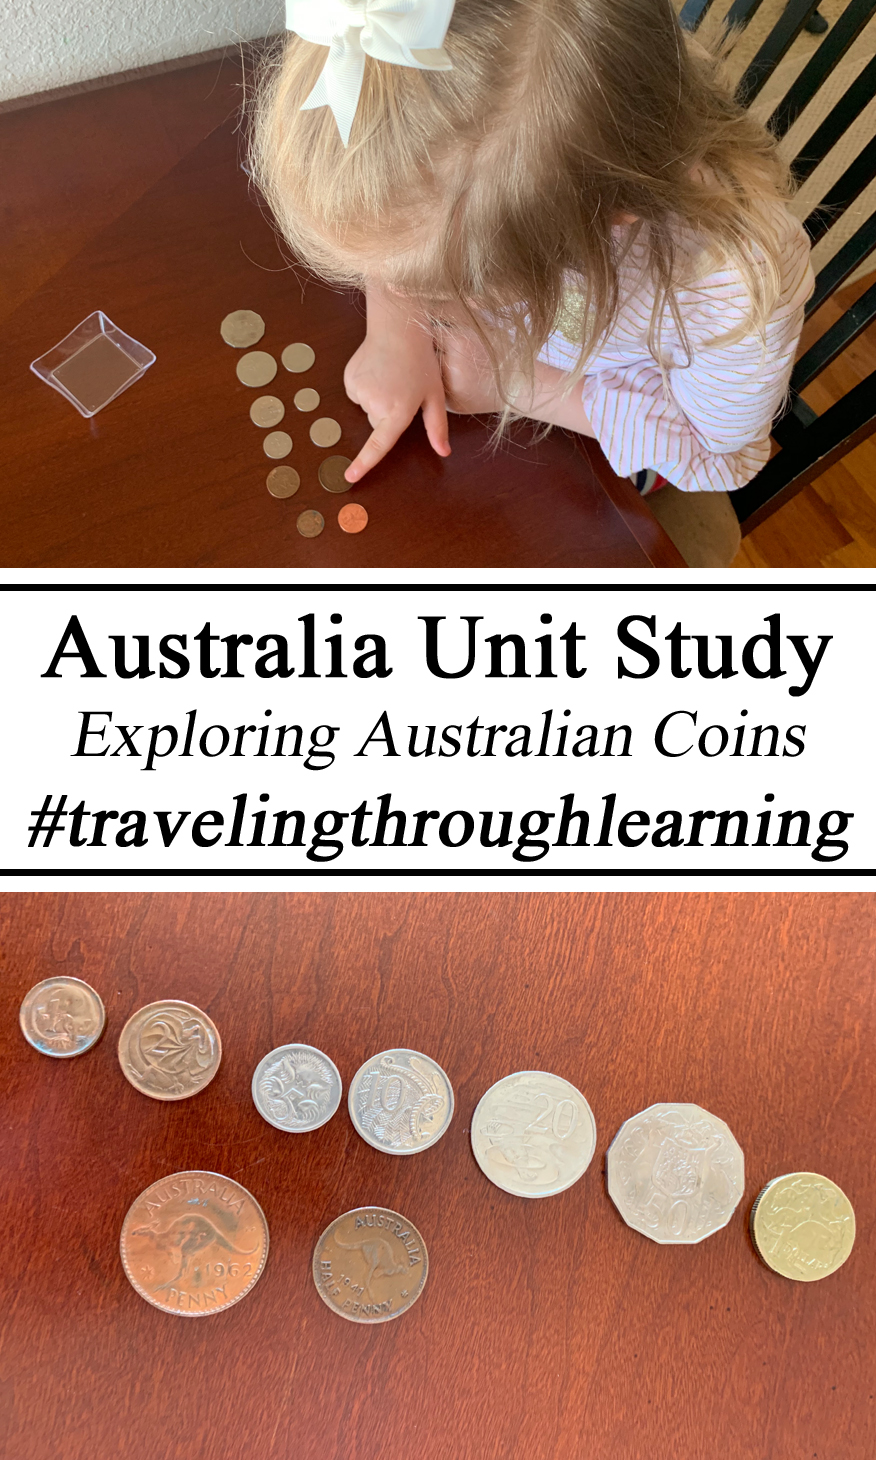 Homeschool, Homeschooling, Australia Unit, Australian Coins, Money, Currency, Geography, #travelingthroughlearning, Culture, Educational, Montessori, Inspired, Preschool, Monetary, Learning to Count, Hands on Activities, Play Based Learning,